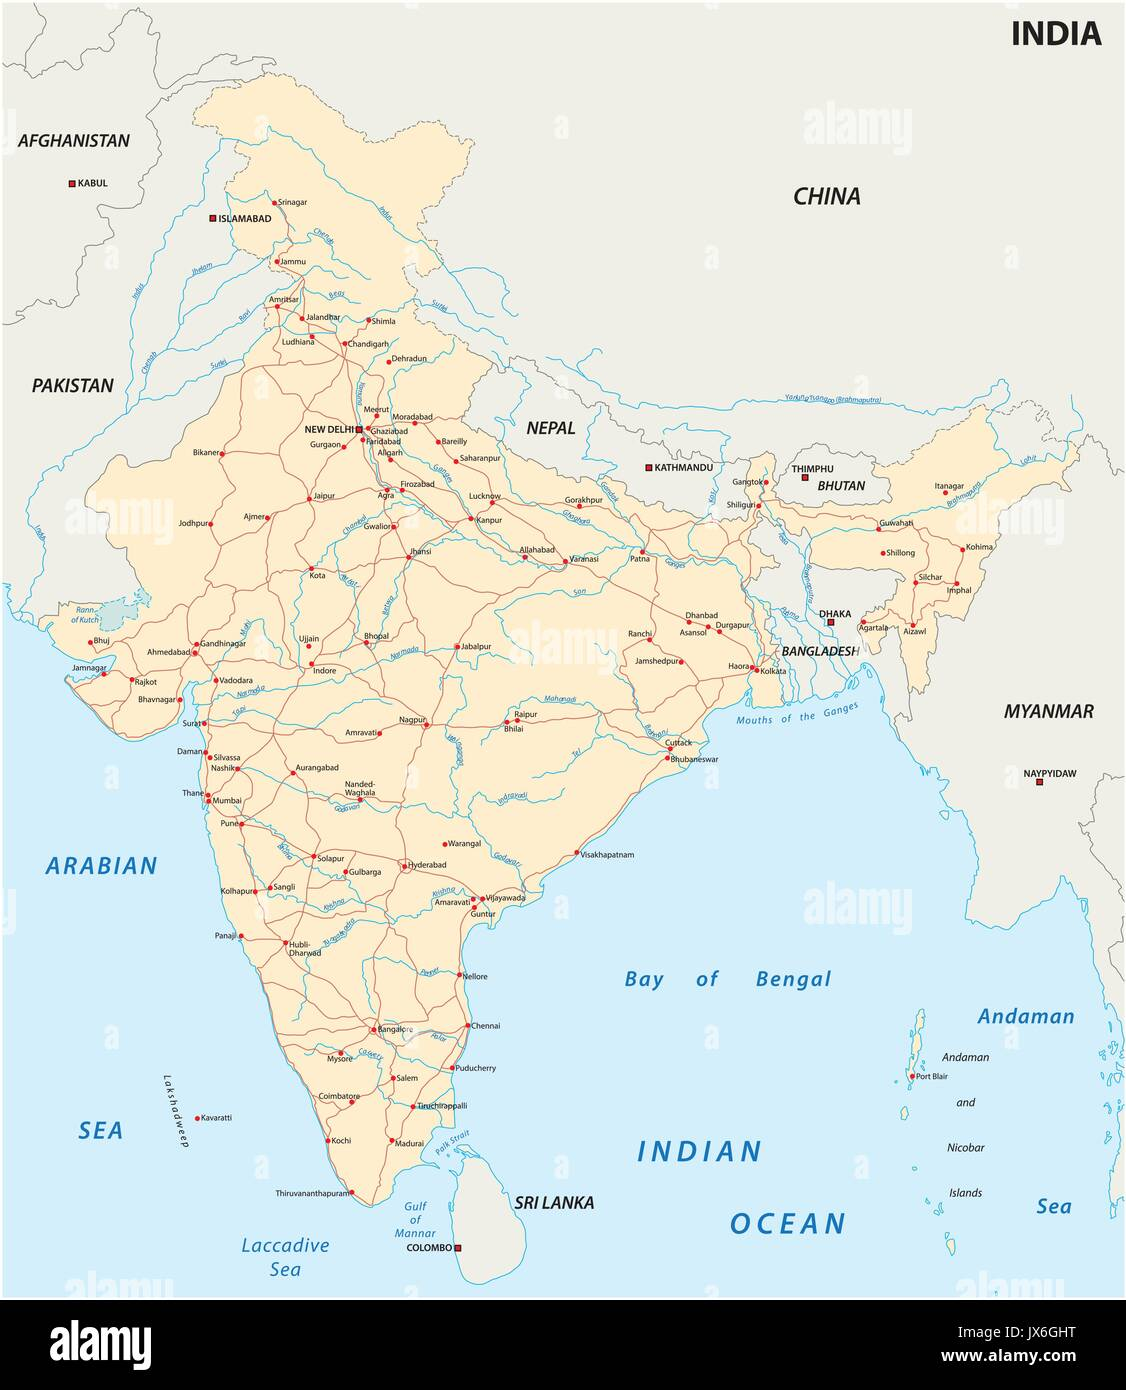 Map Of China And India Stock Photos & Map Of China And India ... China Border With India Map on india china boundary map, spain border map, india border changes, russia border map, australia border map, france border map, pakistan border map, western chinese border map,